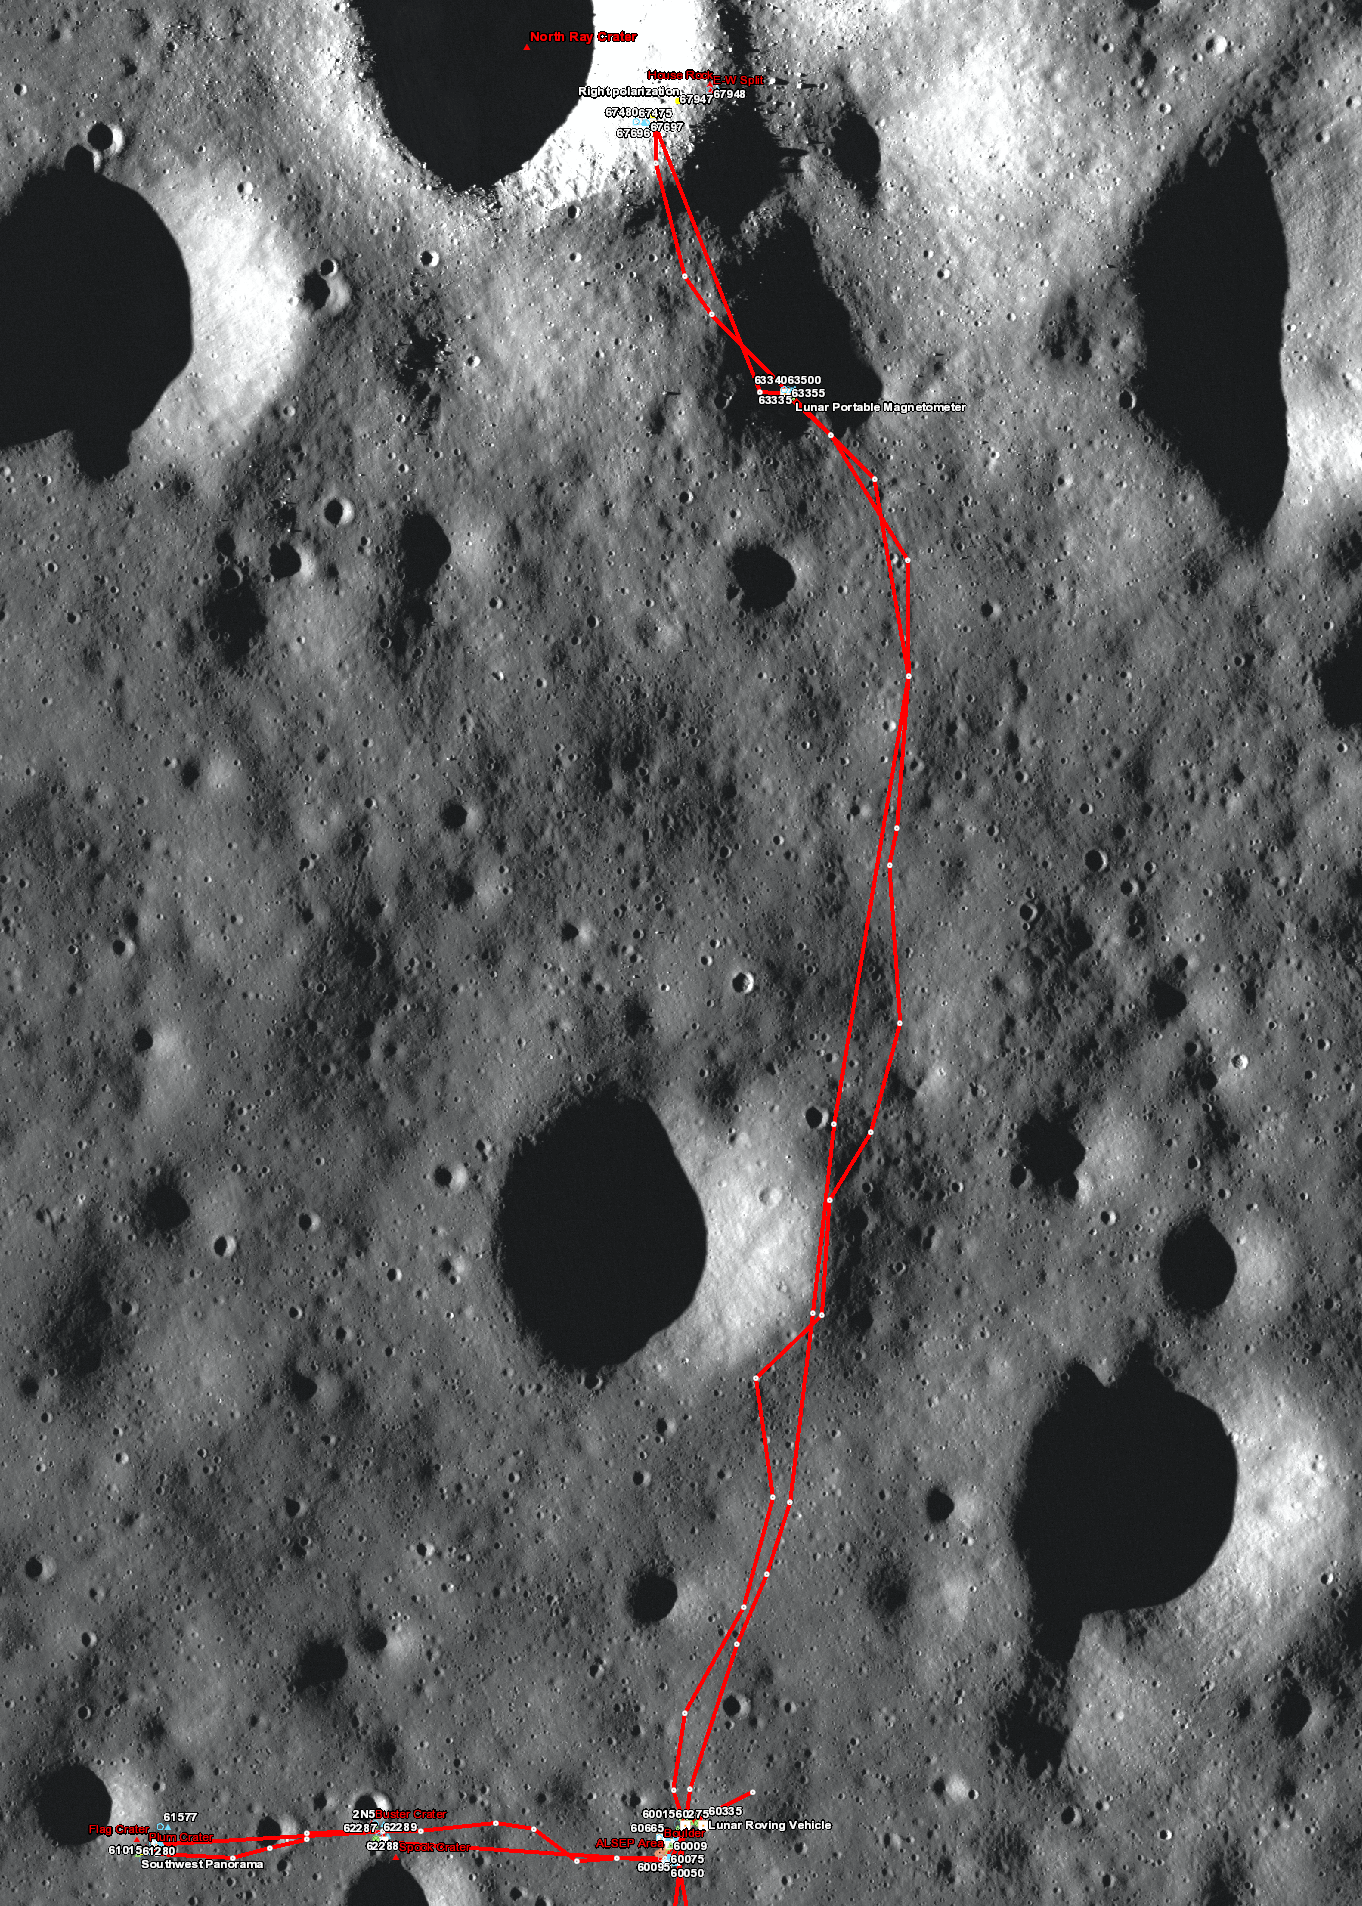 Apollo 16 sample location map (top)